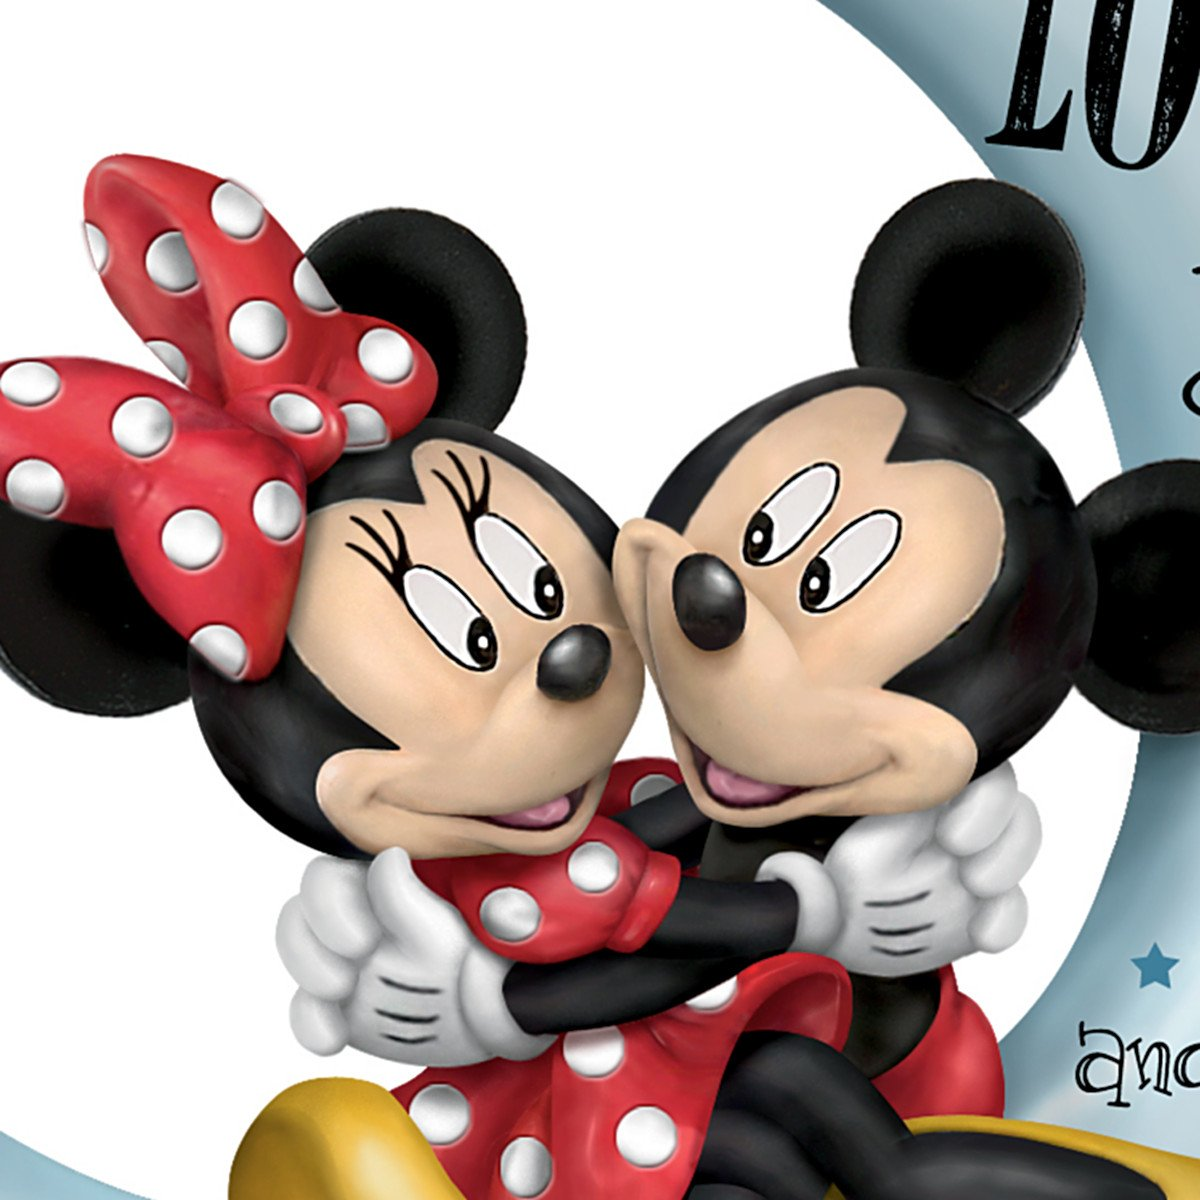 The Hamilton Collection Disney Mickey Mouse and Minnie Mouse I Love You to The Moon and Back Figurine